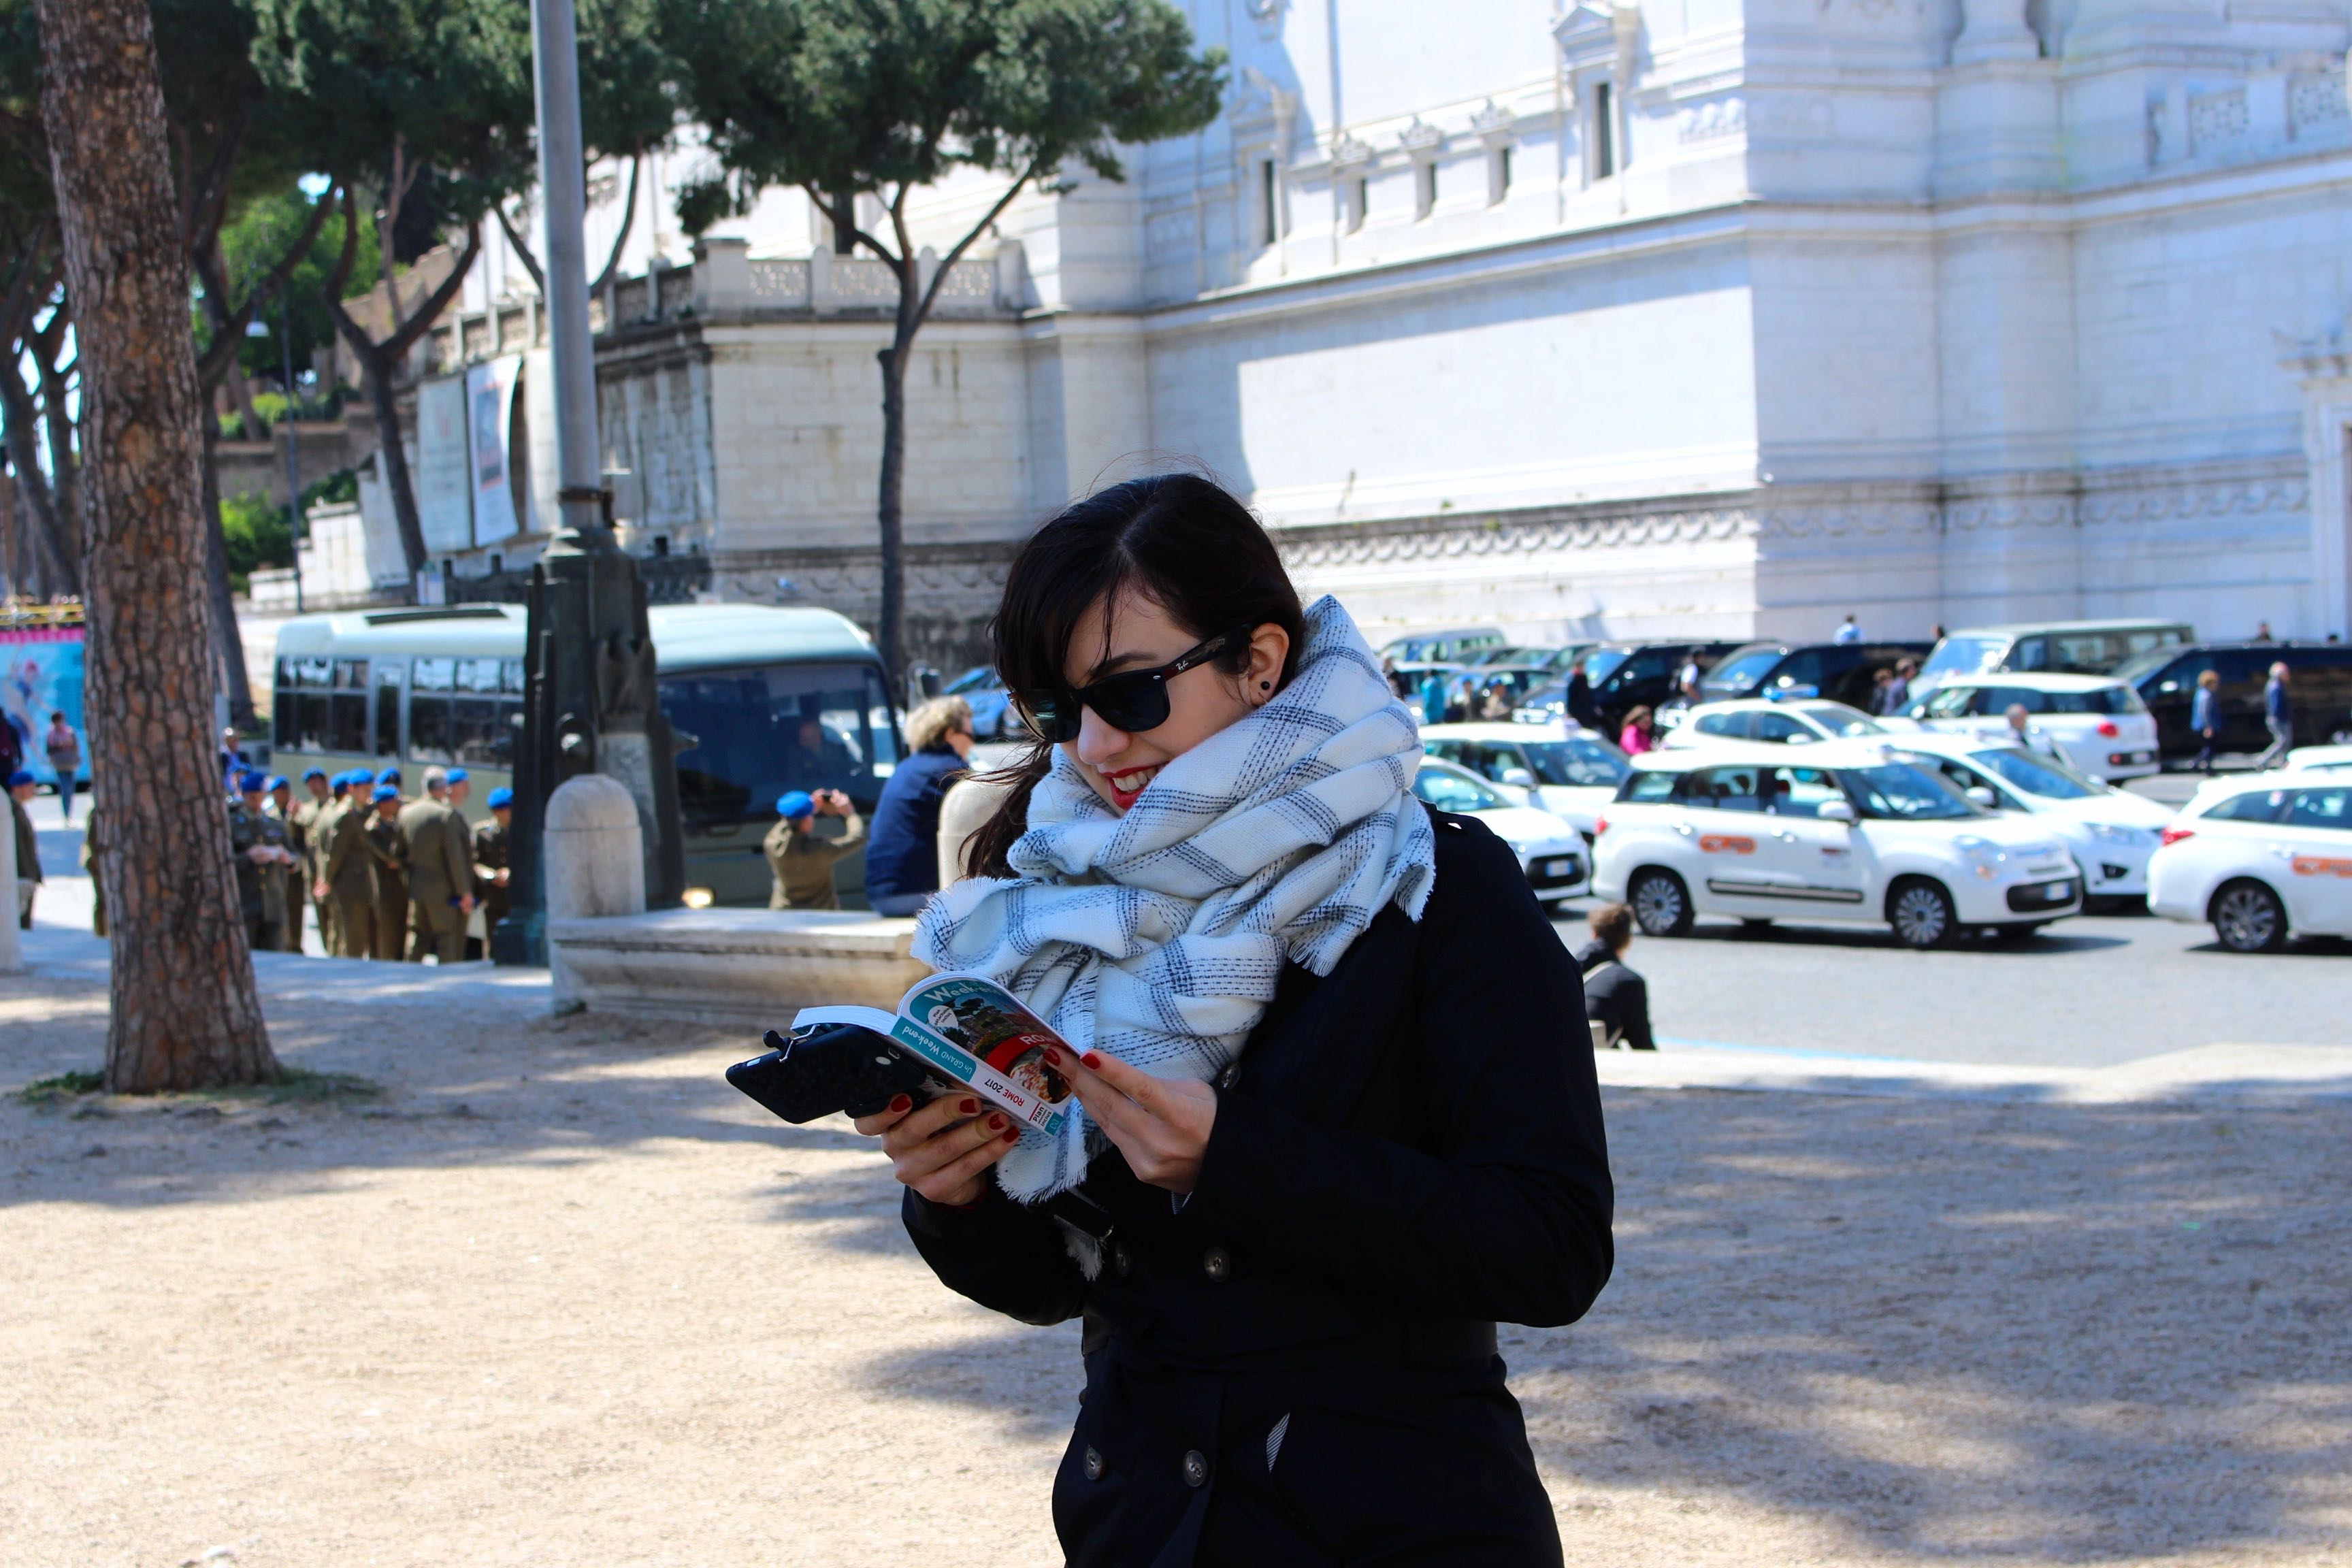 Rome city guide look 2 mademoiselle-e